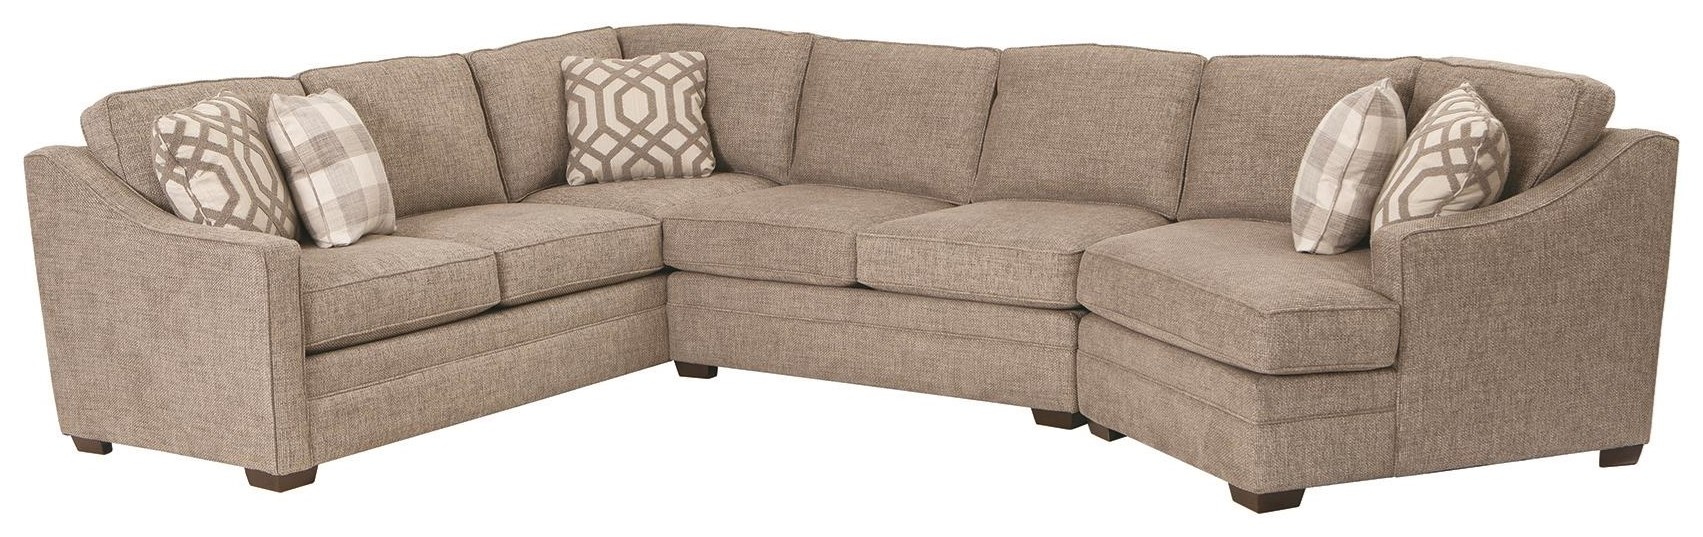 F9 Custom Collection 3 Piece Sectional by Craftmaster at Darvin Furniture